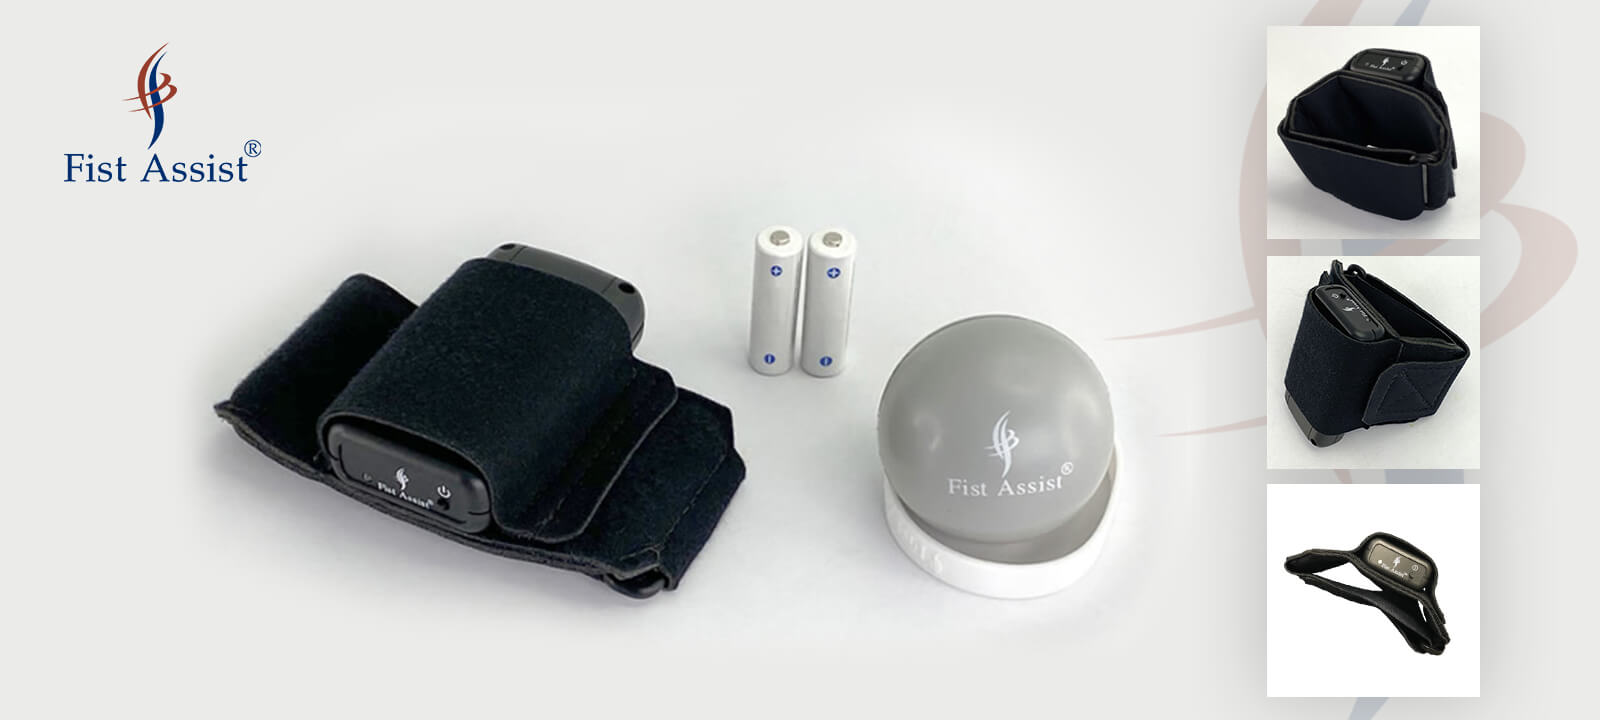 Fist Assist Devices